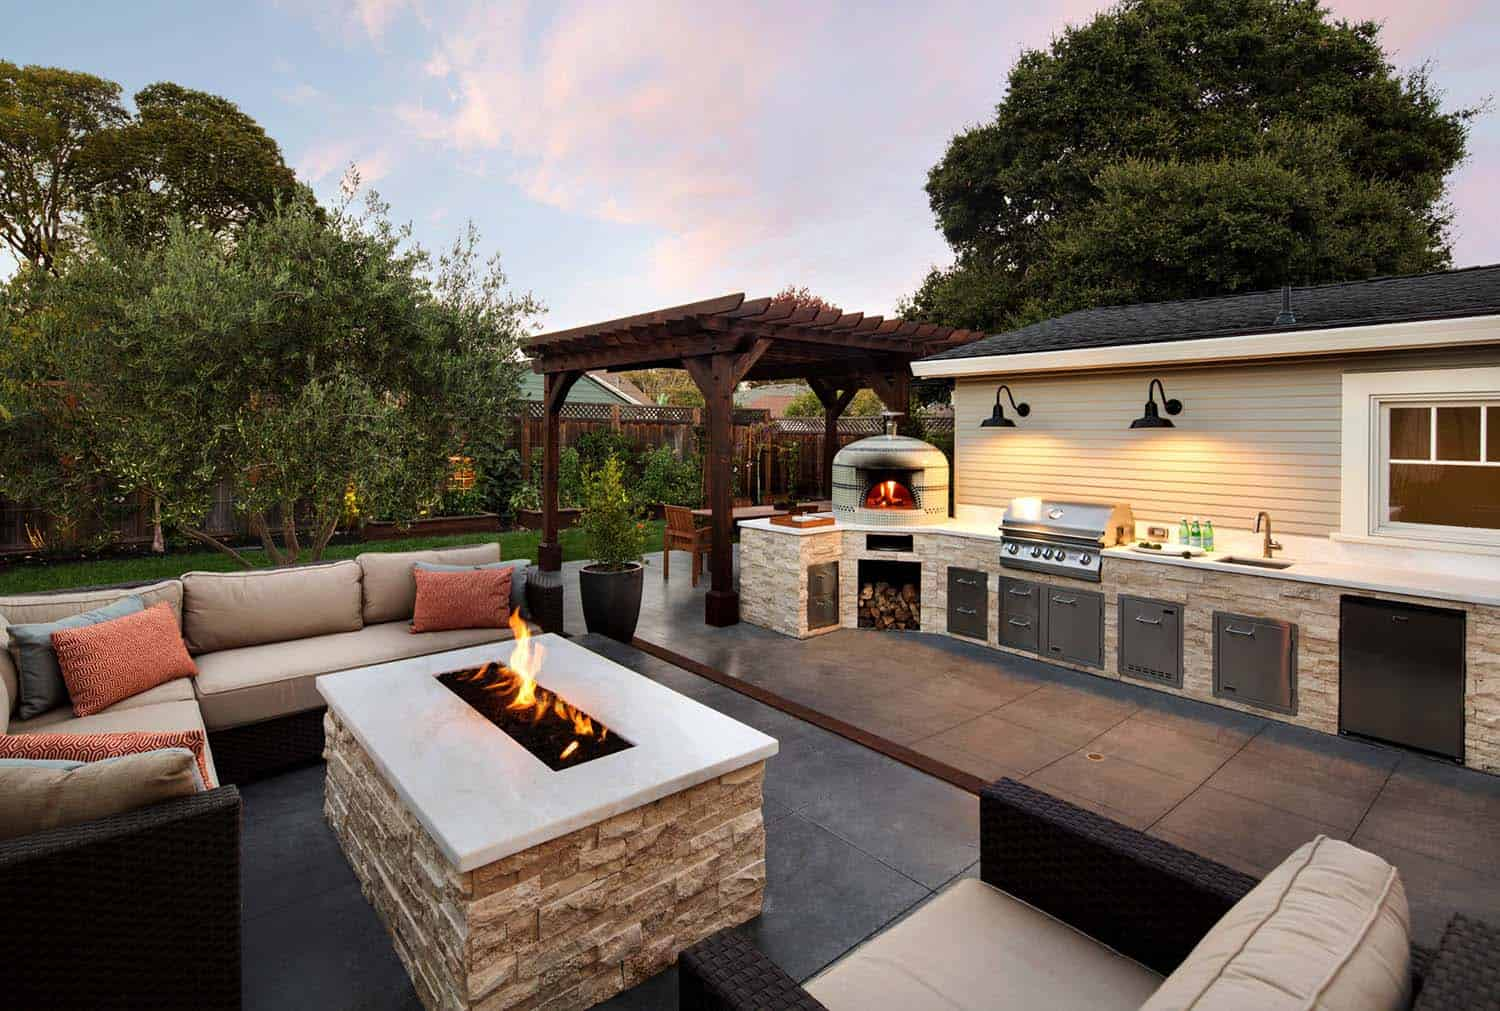 35 Brilliant and inspiring patio ideas for outdoor living ...